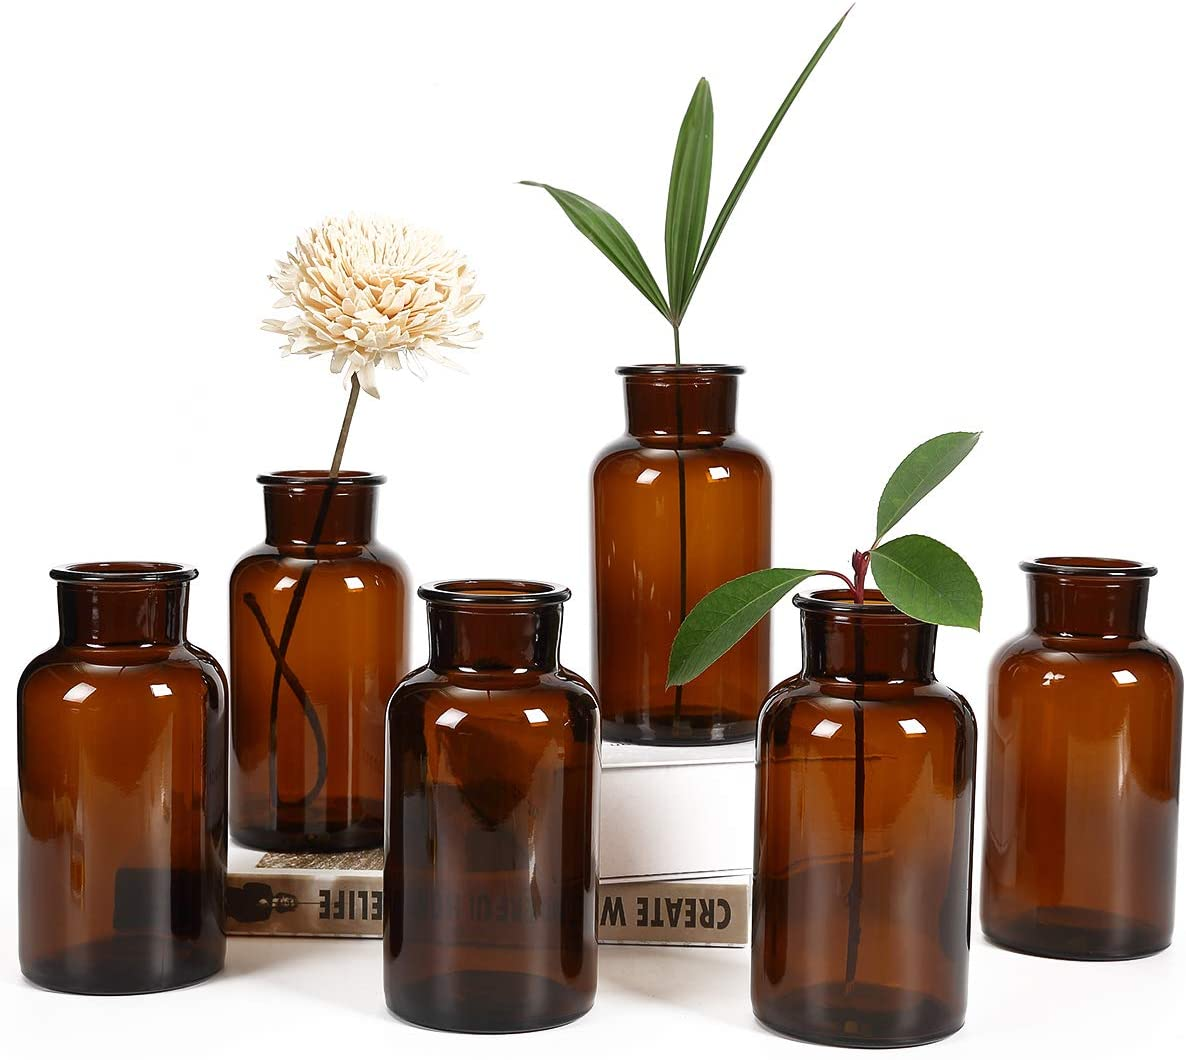 Amazon Com Amber Glass Vase Bud Vases Apothecary Jars Decorative Glass Bottles Small Glass Flower Vases Vintage Medicine Bottles For Home Decor Centerpiece Wedding Bridal Shower Events Set Of 6 Kitchen Dining